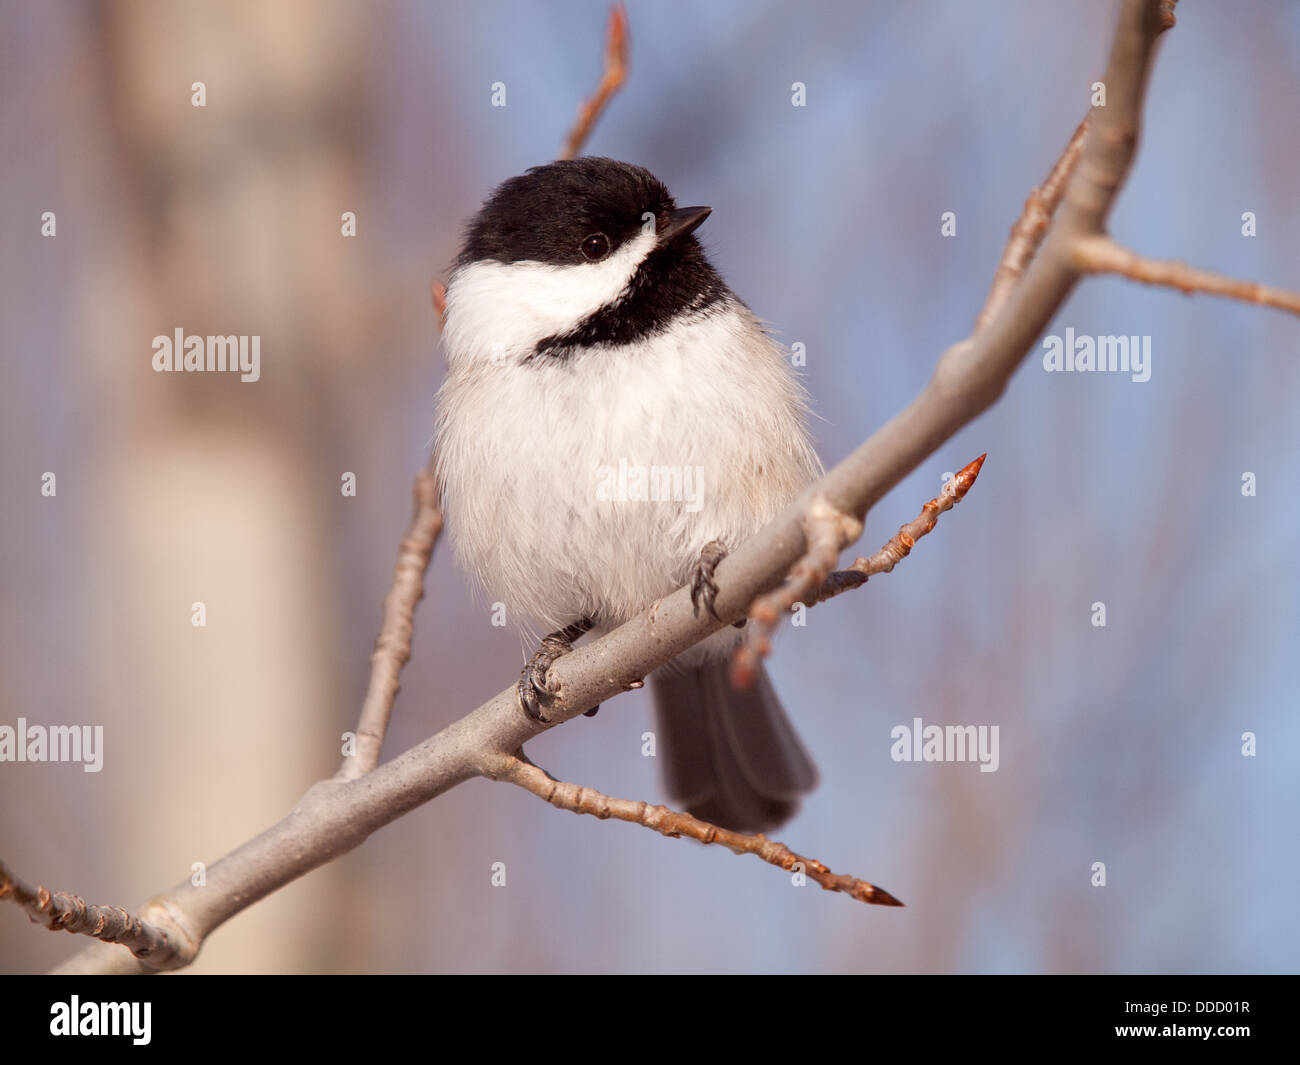 A cute, fluffy Black-capped chickadee. - Stock Image